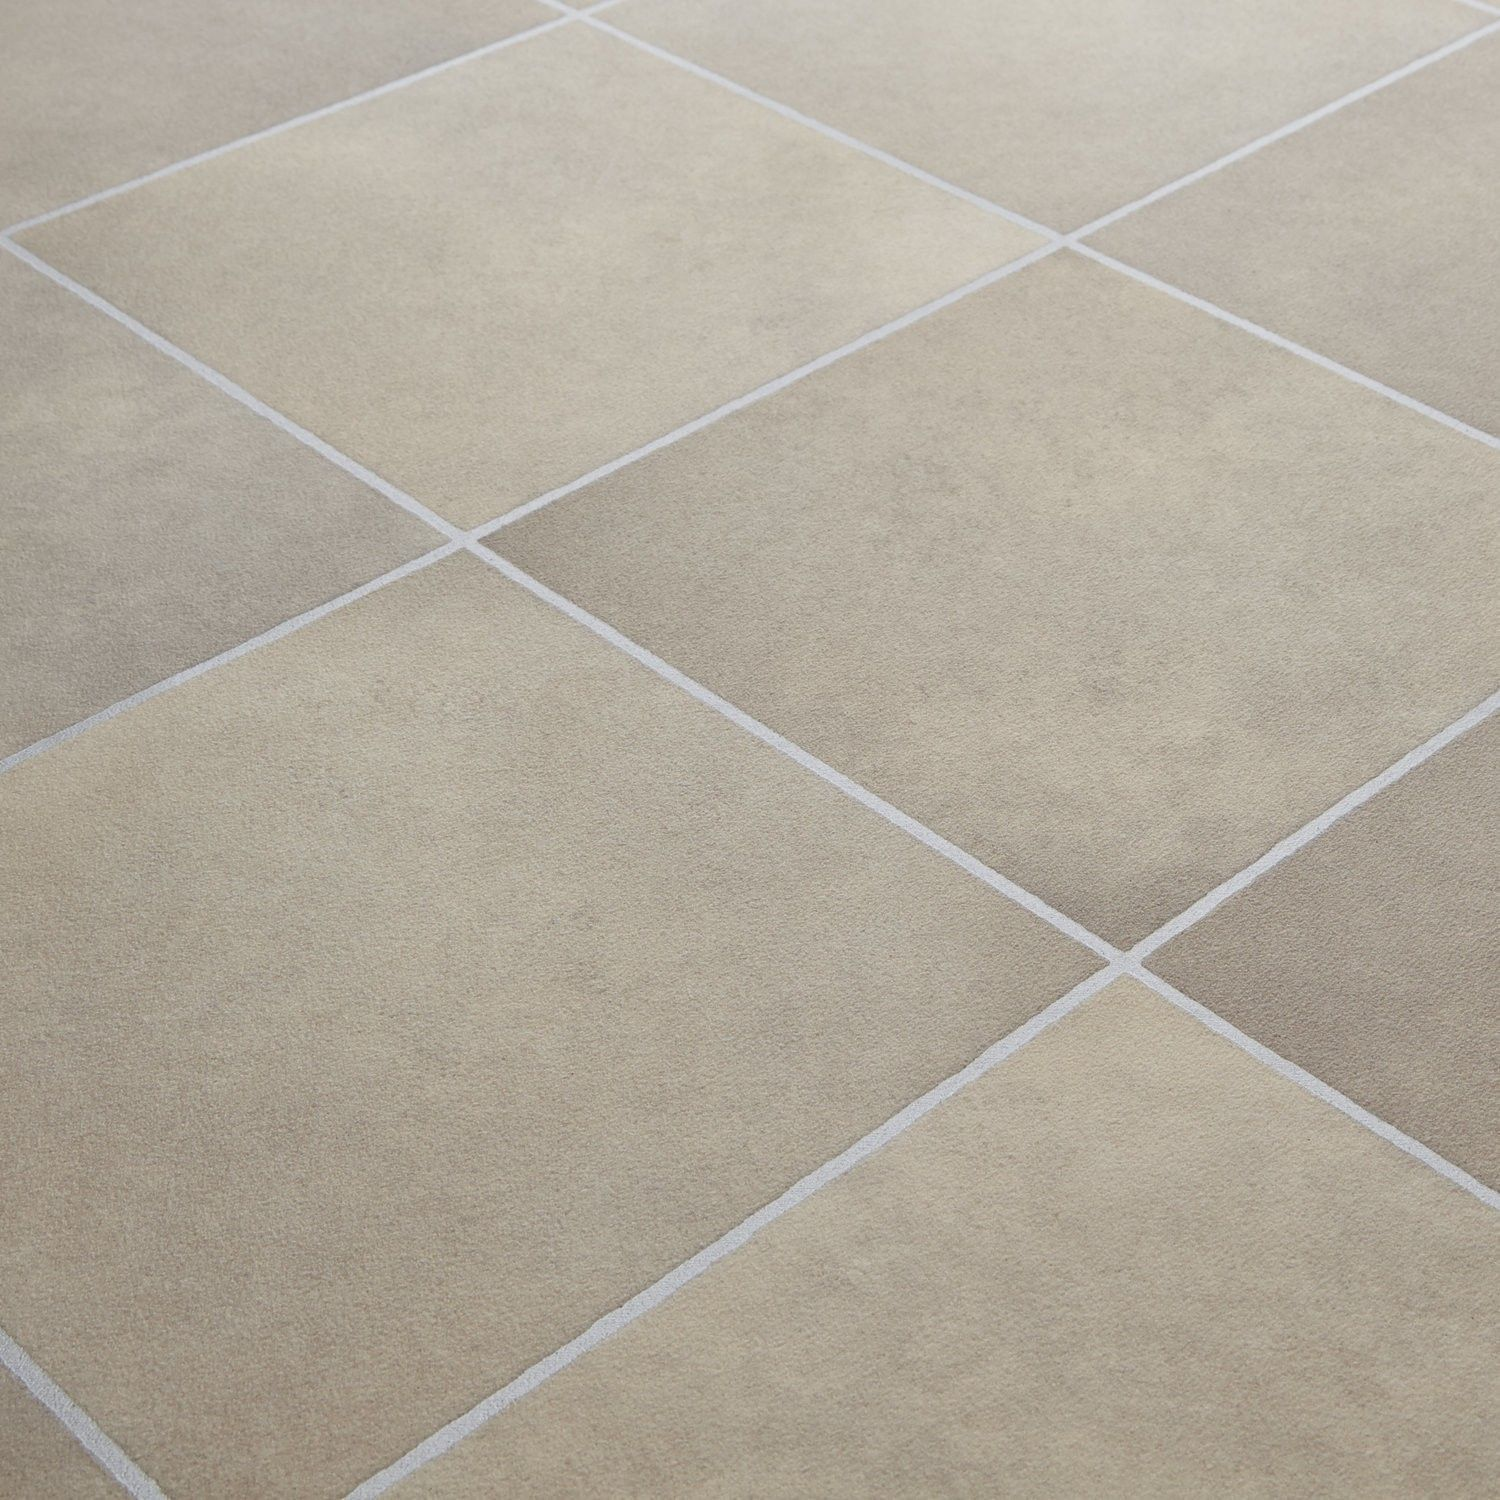 Vinyl Kitchen Floor Tiles 1039 Mardi Gras 535 Durango Stone Tile Effect Vinyl Flooring